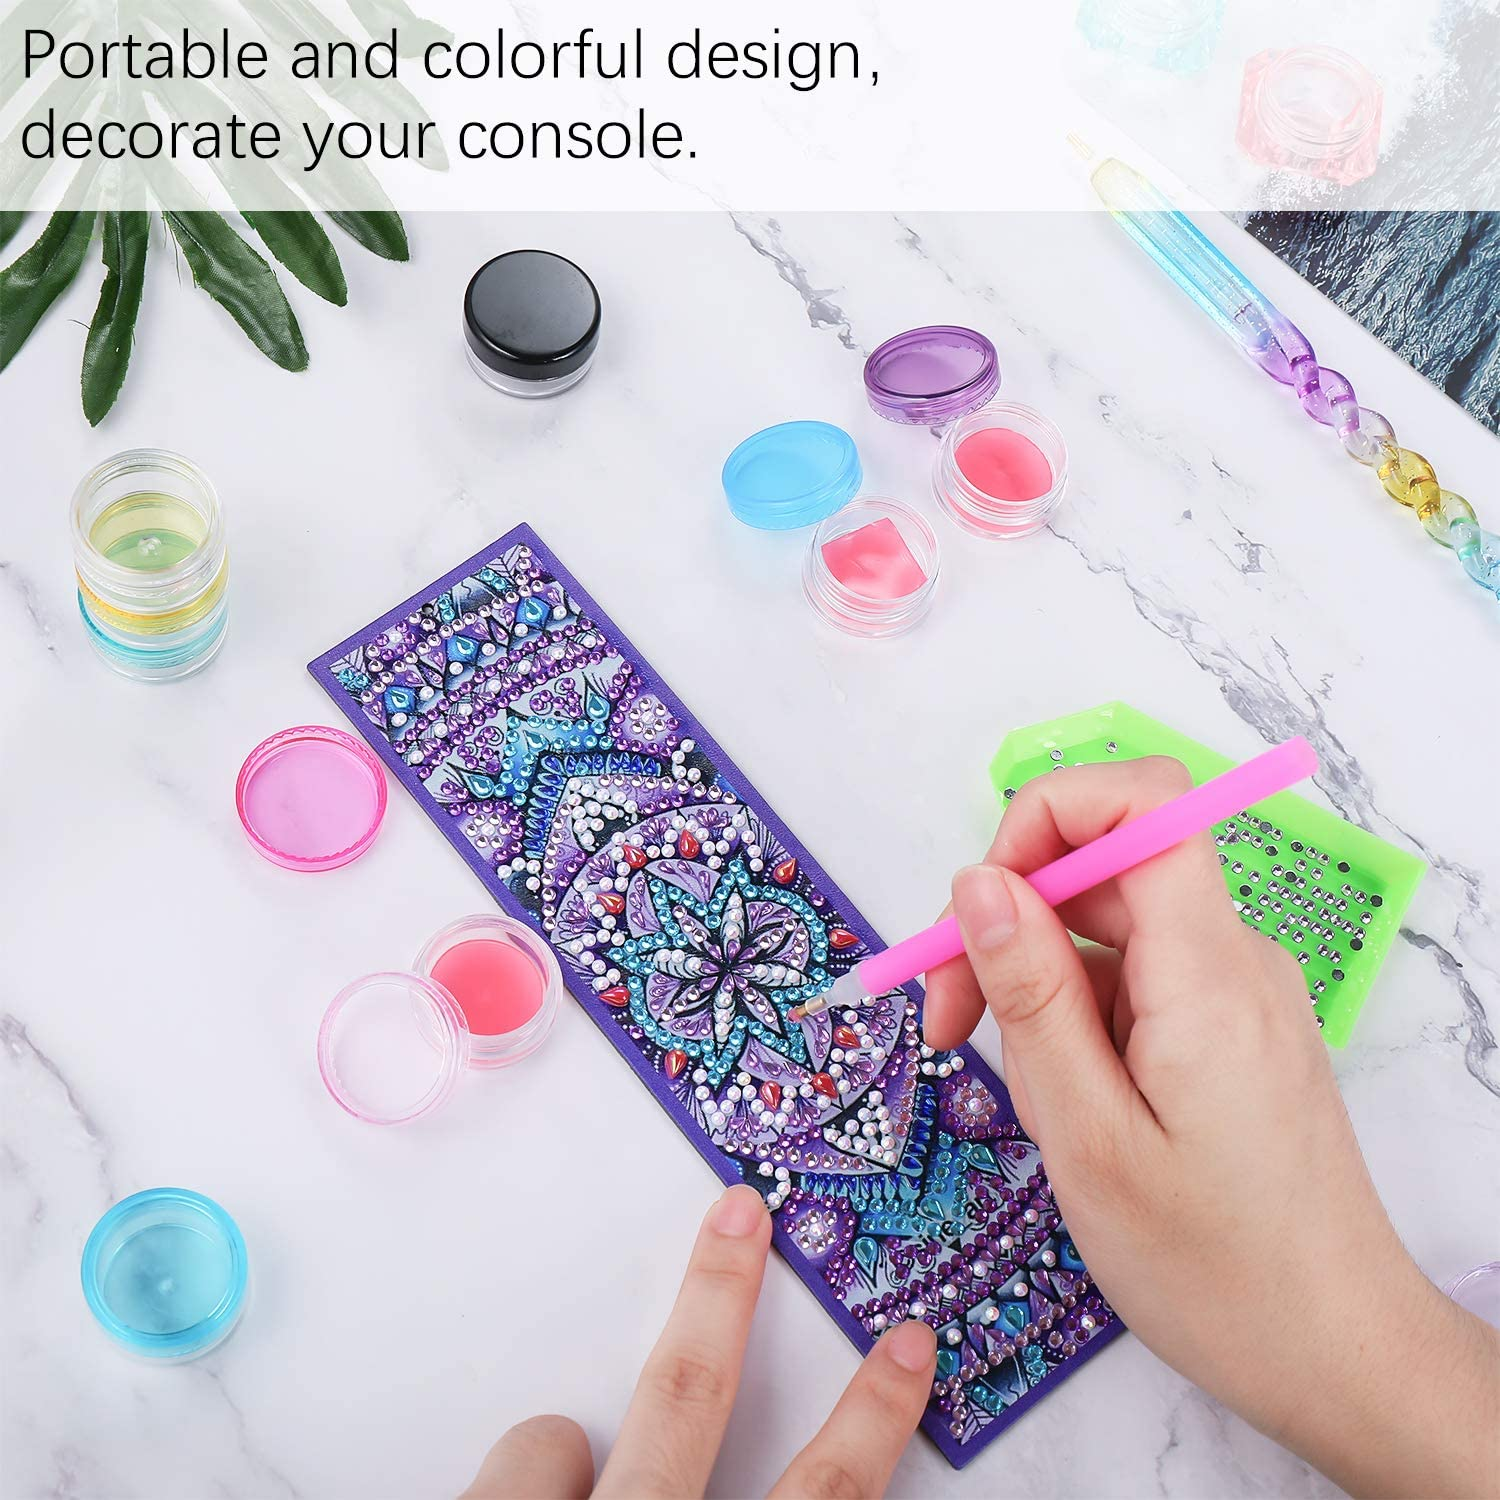 30 Pieces Diamond Painting Glue Clay DIY Diamond Embroidery Glue and 20 Pieces Diamond Painting Wax Storage DIY Painting Wax Organizer Box for Diamond Painting Accessories